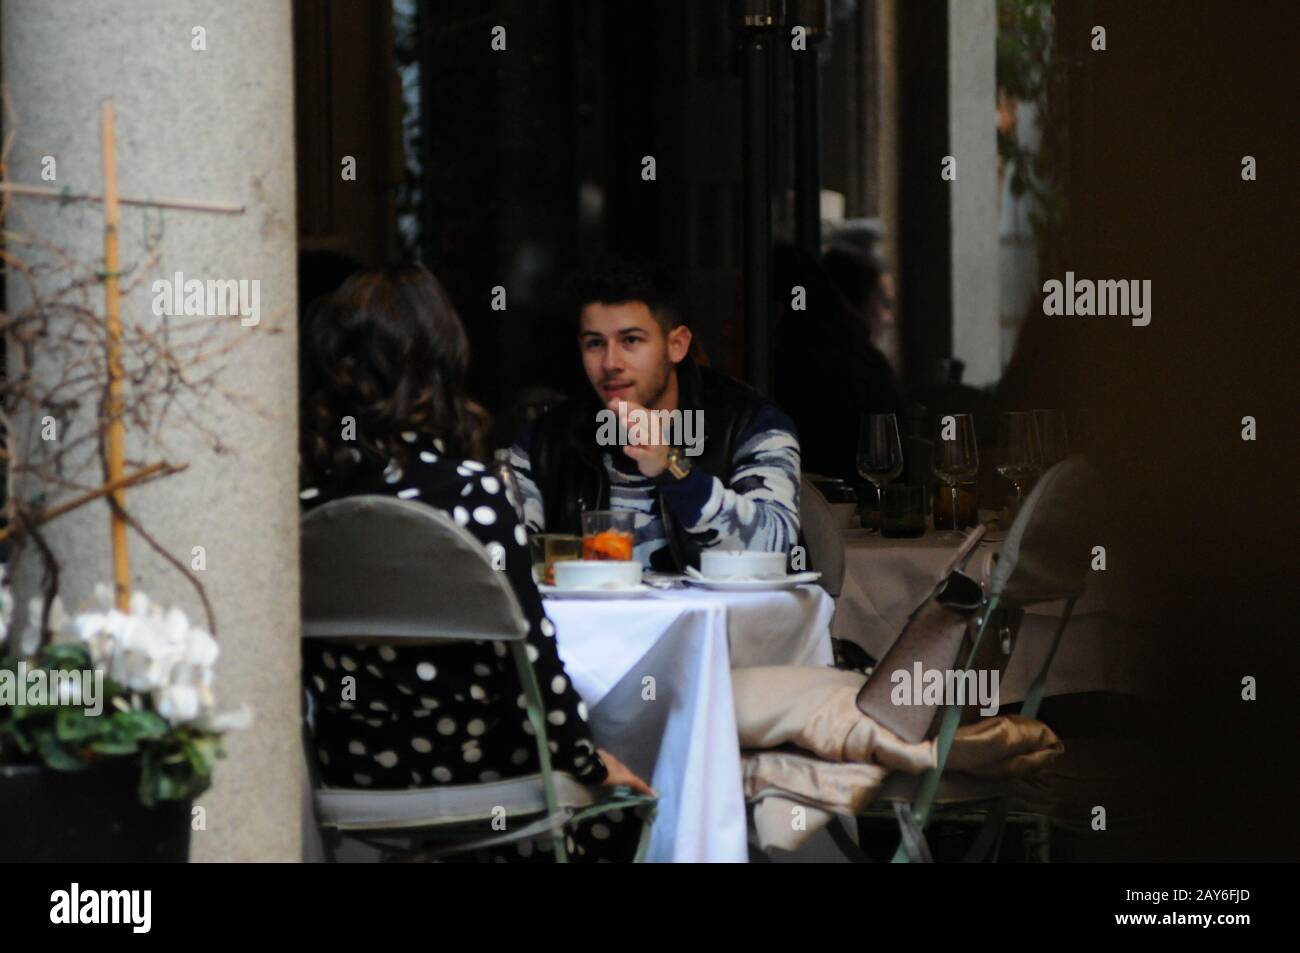 "Milan, Italy. 14th Feb, 2020. Nick Jonas and wife Priyanka Chopra lunch in the center Nick Jonas, one of the 3 brothers of the famous musical group ""JONAS BROTHER"" in concert this evening in Milan, surprised at lunch in a well-known restaurant in the center together with his wife Priyanka Chopra, actress model and Indian singer, winner of the beauty contest Miss World 2000, first Bollywood actress to have won 5 filmfare Awards in 5 different categories. In 2015 protagonist of the US TV series ""Quantico"", and he is Goodwill Ambassador of UNICEF. Credit: Independent Photo Agency Srl/Alamy Live N Stock Photo"